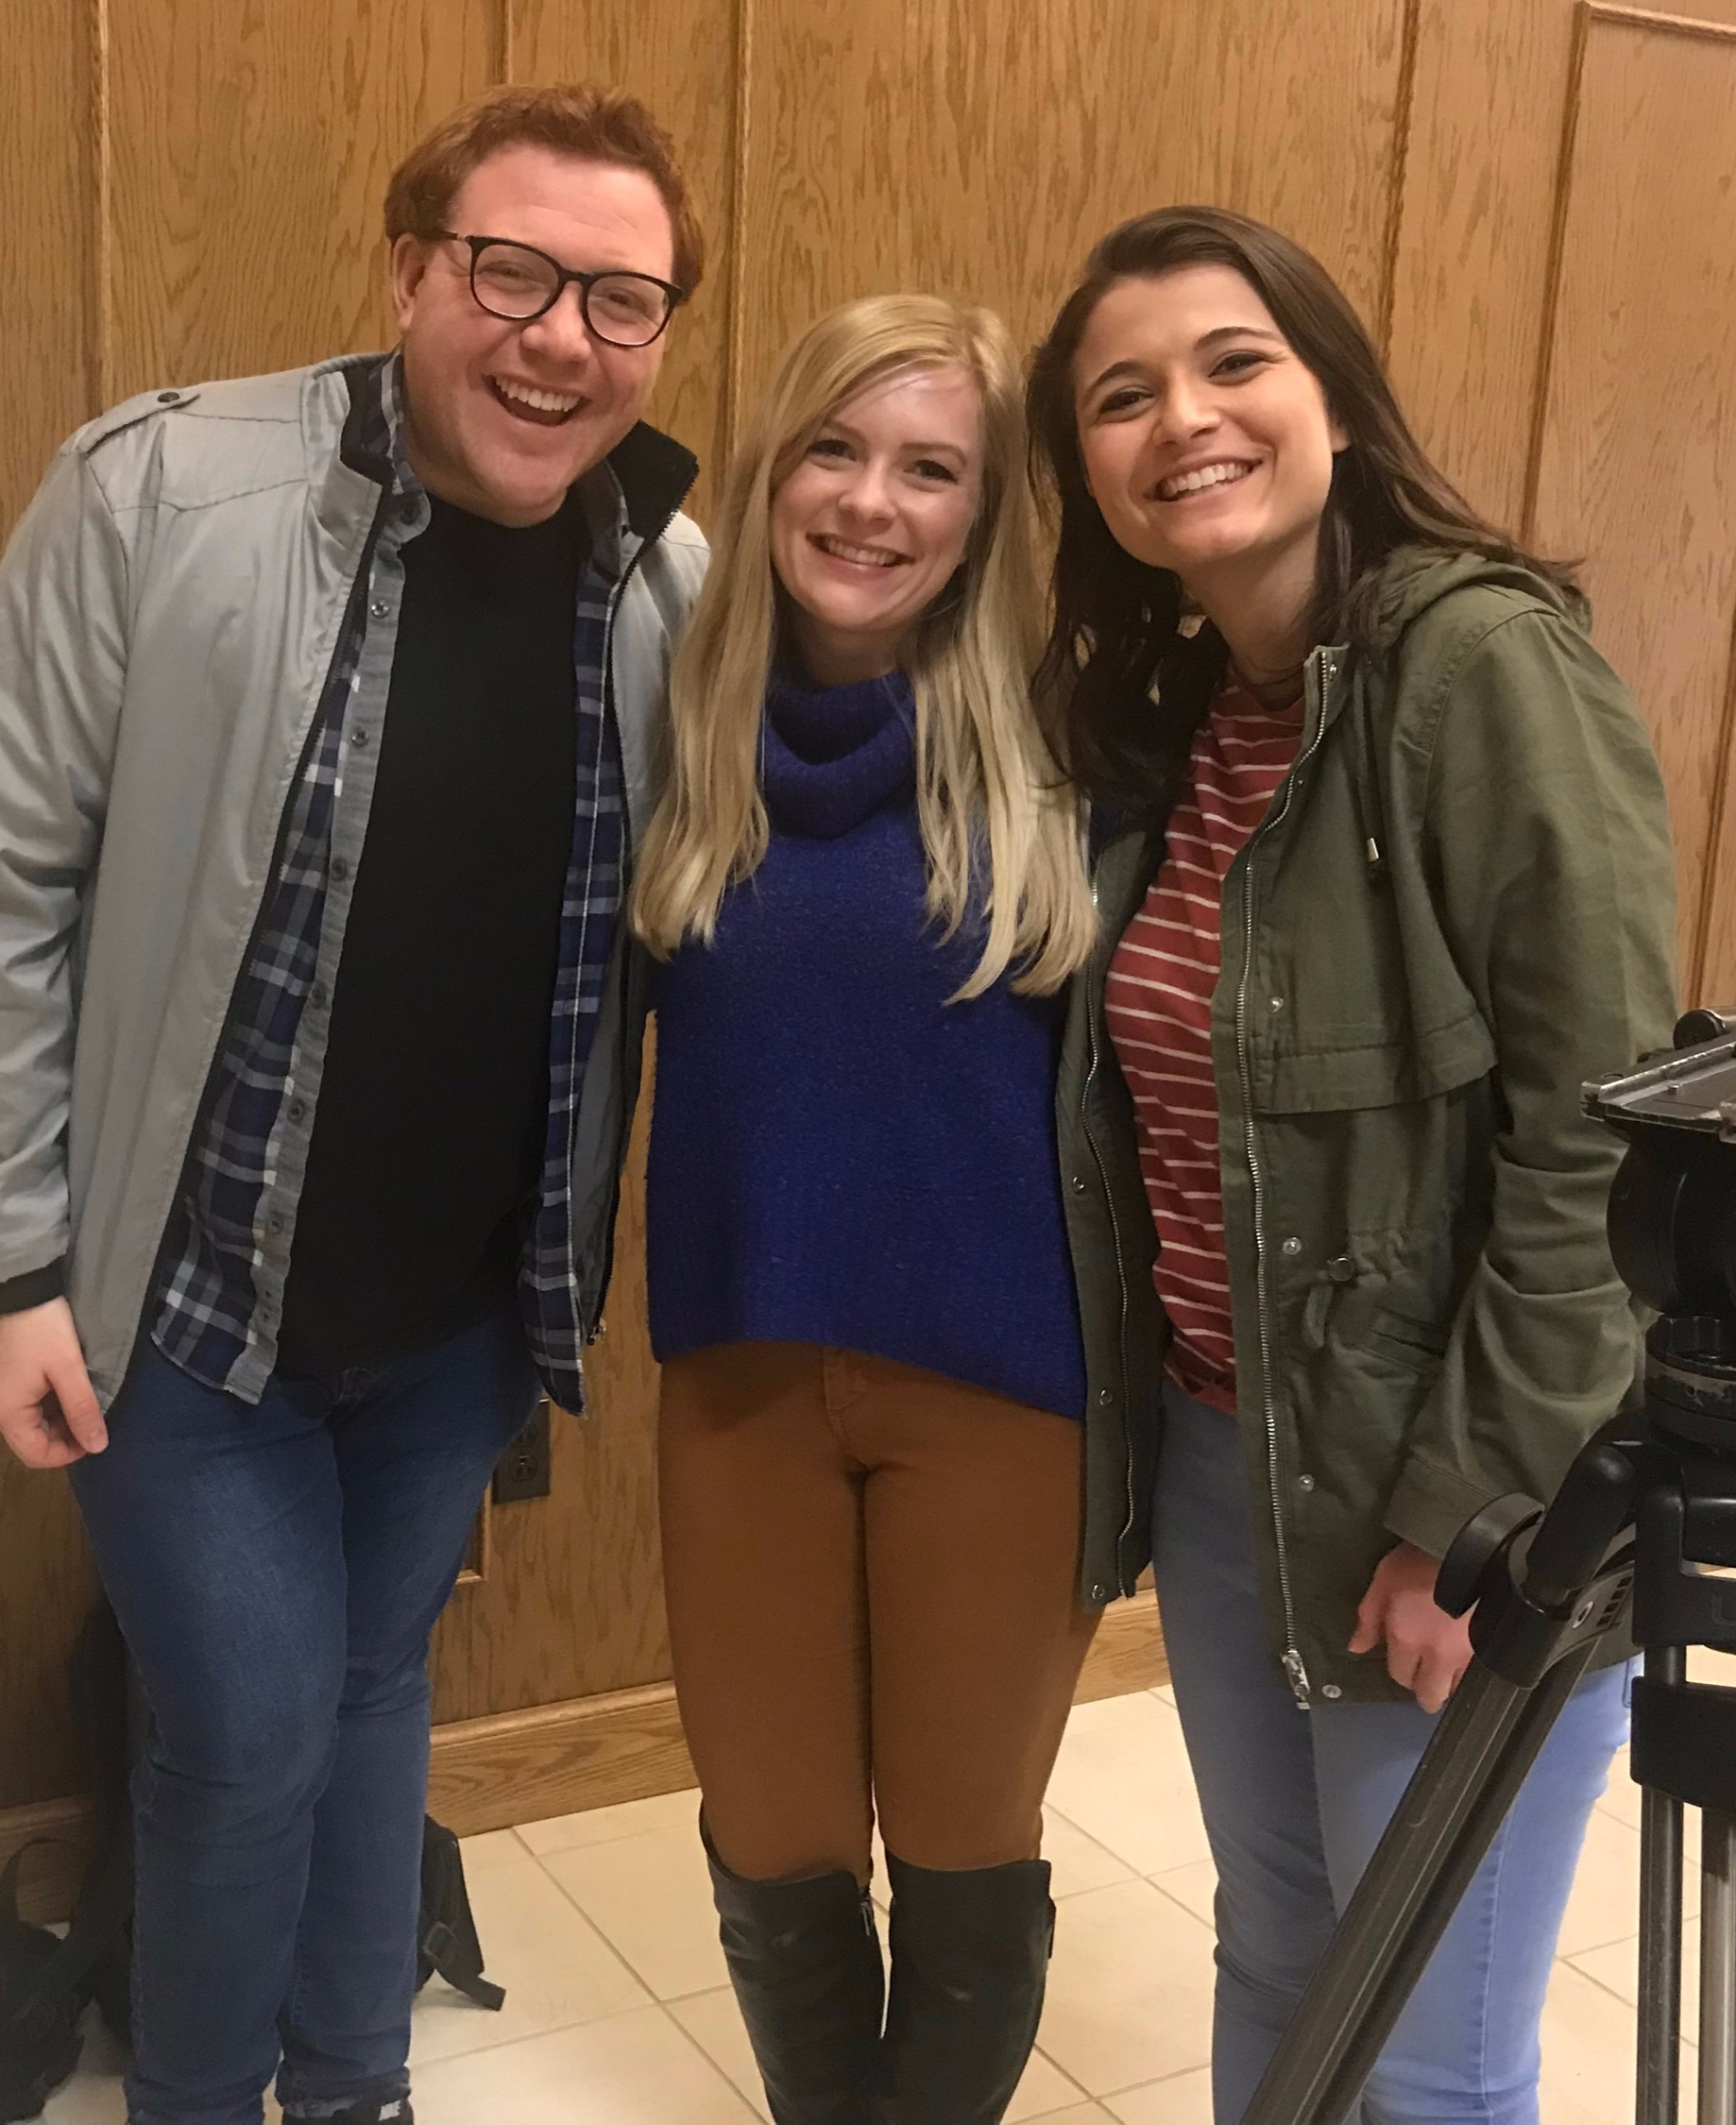 Quentin, Kait Kelly, and Lauren